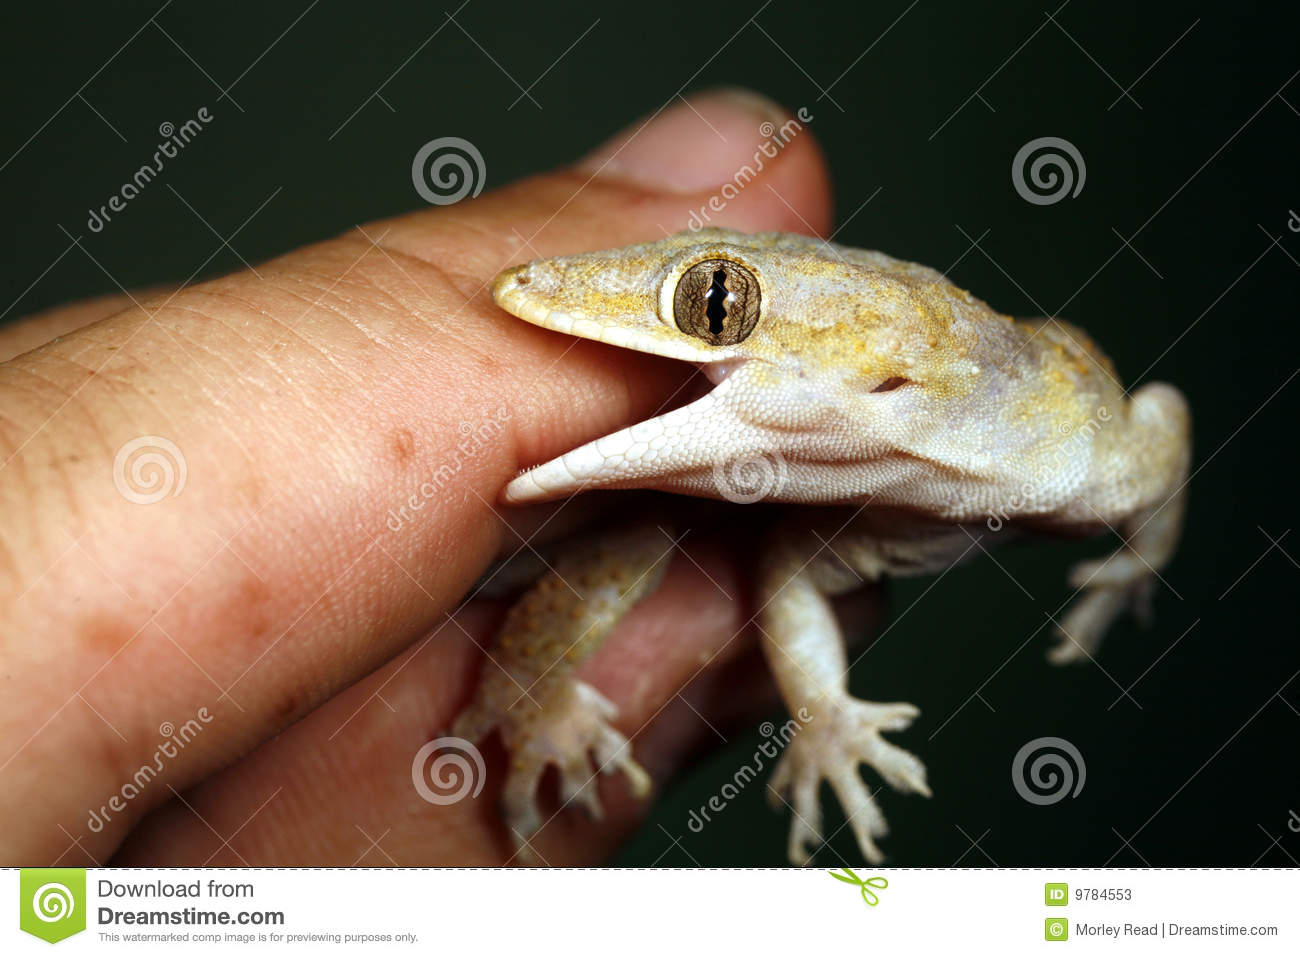 Tropical house gecko biting a finger.